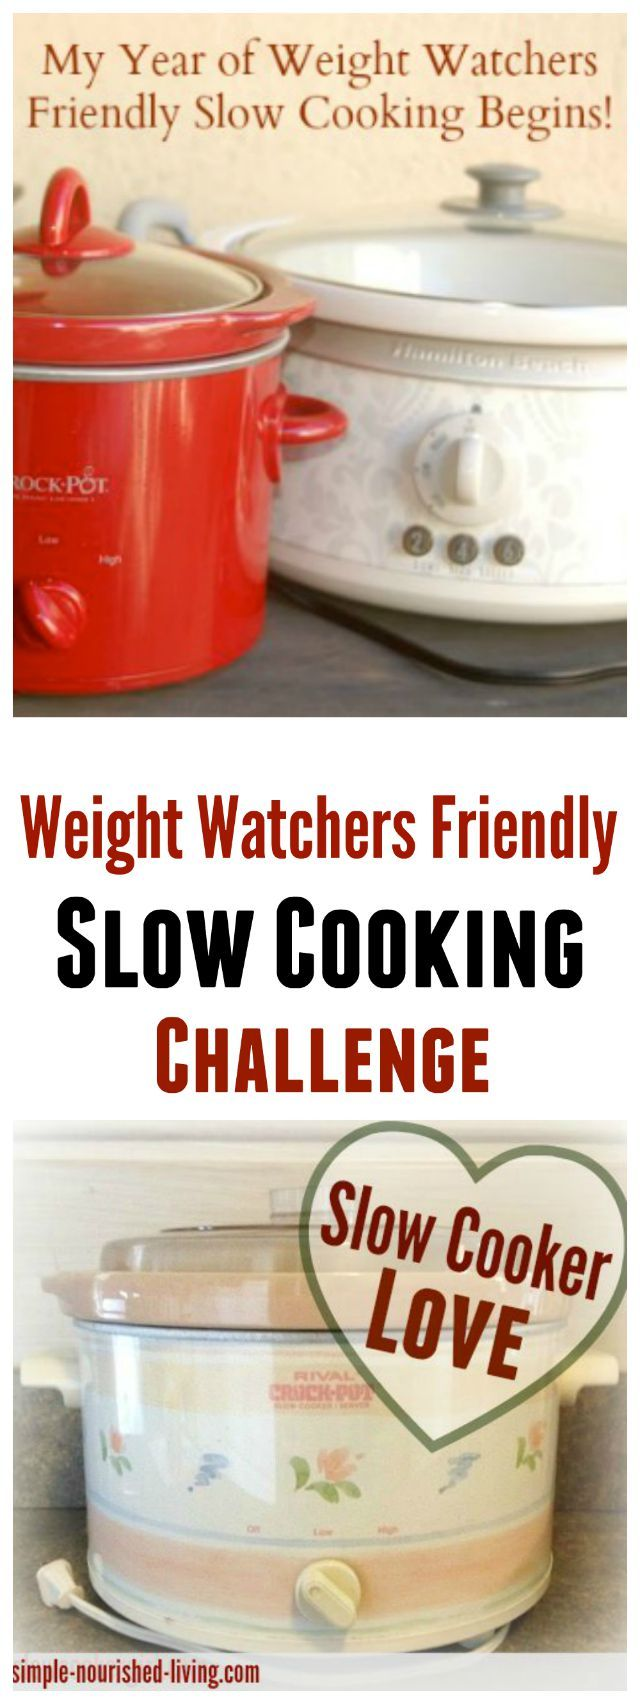 My Year of Weight Watchers Friendly Slow Cooking Challenge. I need to try this